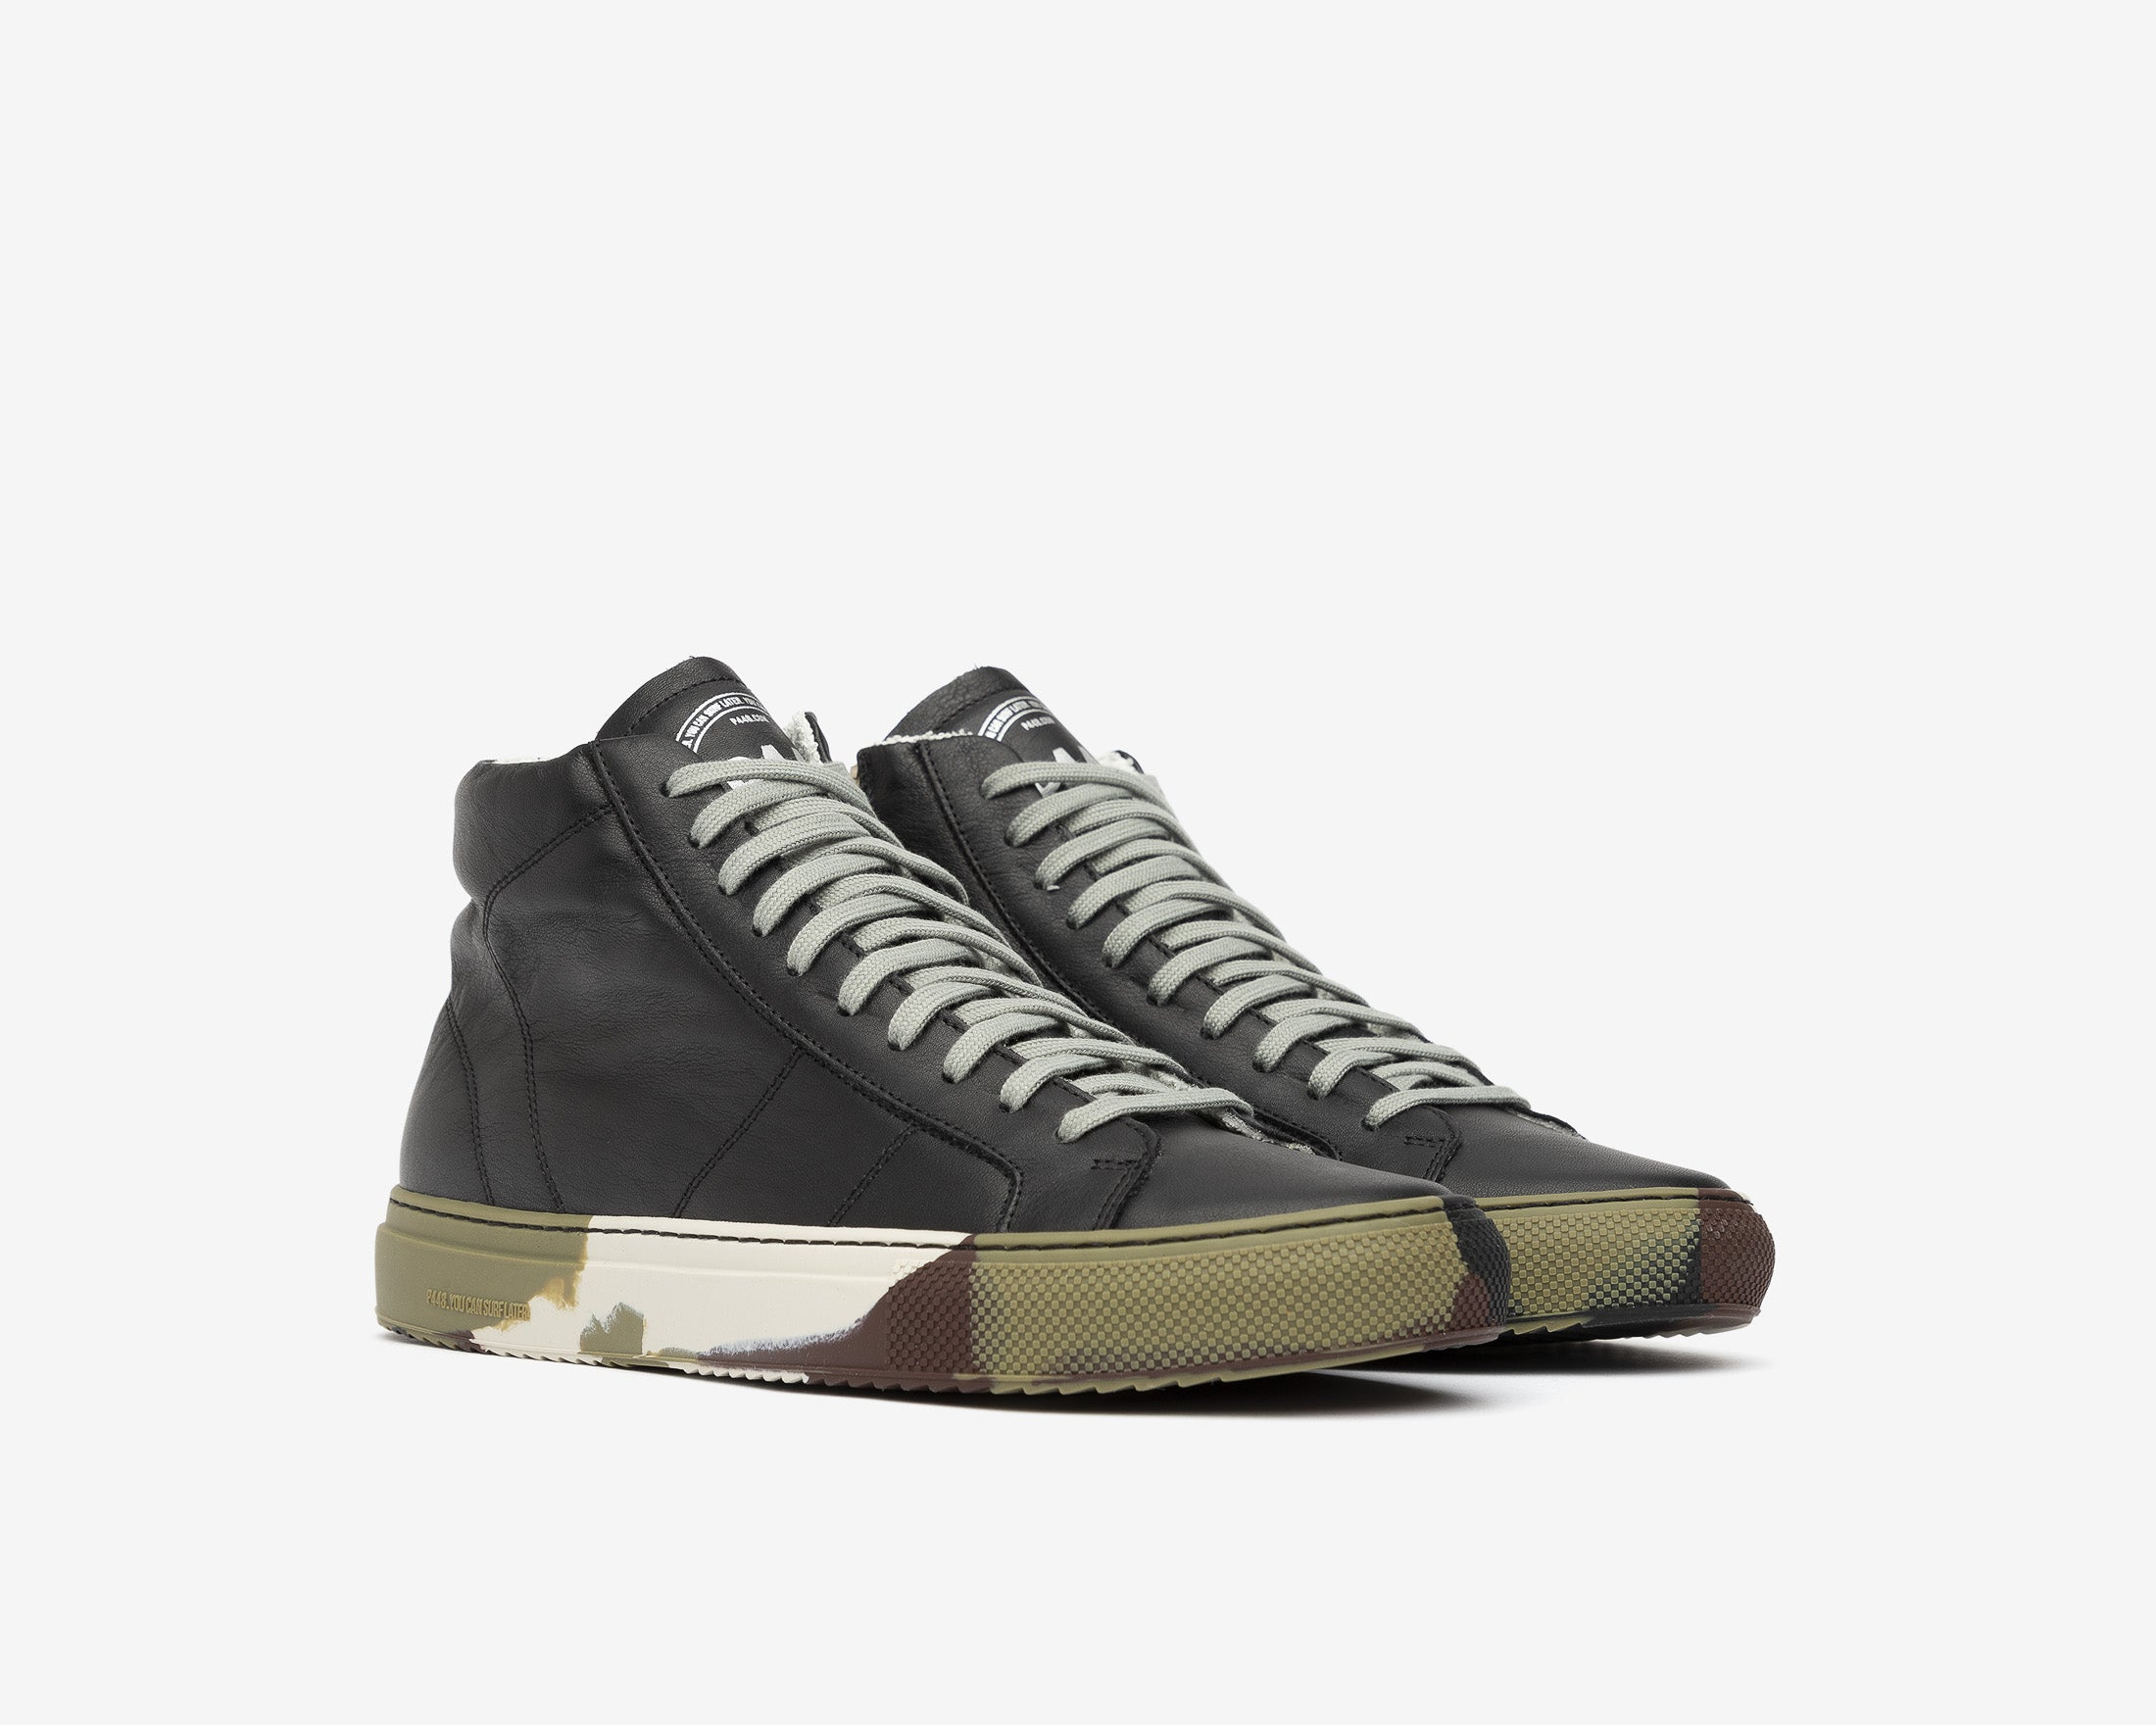 Star High-Top Sneaker in Black/Camo - Side